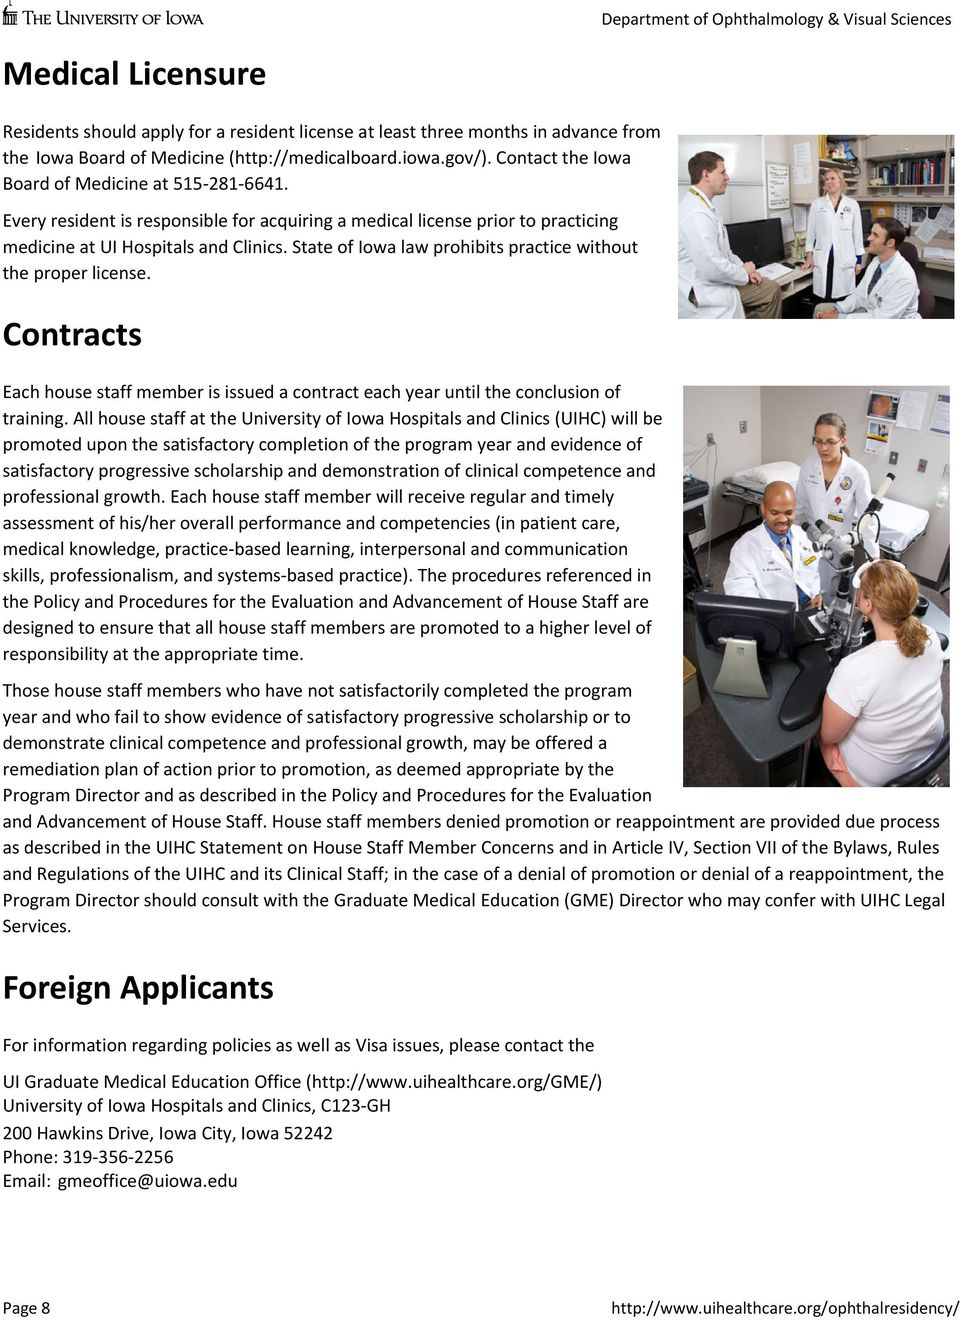 Ophthalmology Residency  About the Program  Ophthalmology